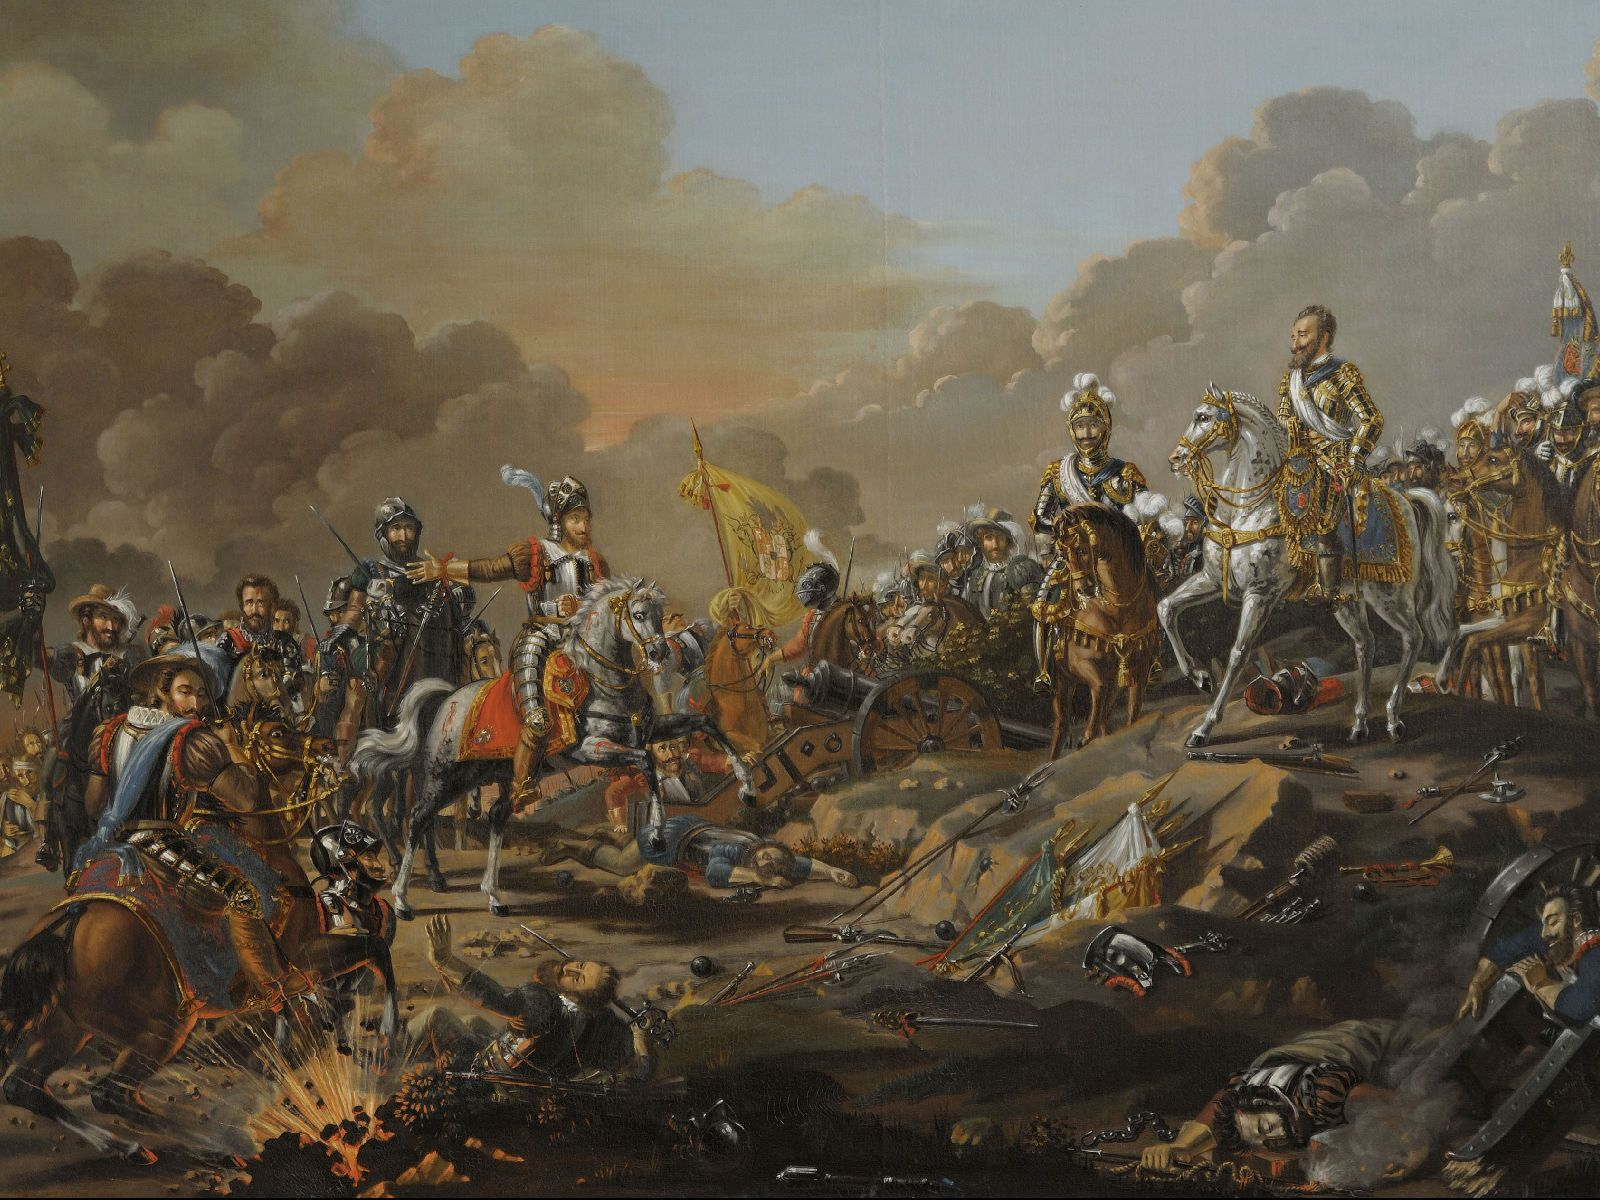 King Henri Iv Triumphant At The Battle Of Ivry French War Of Religions War Art Modern Artwork Painting